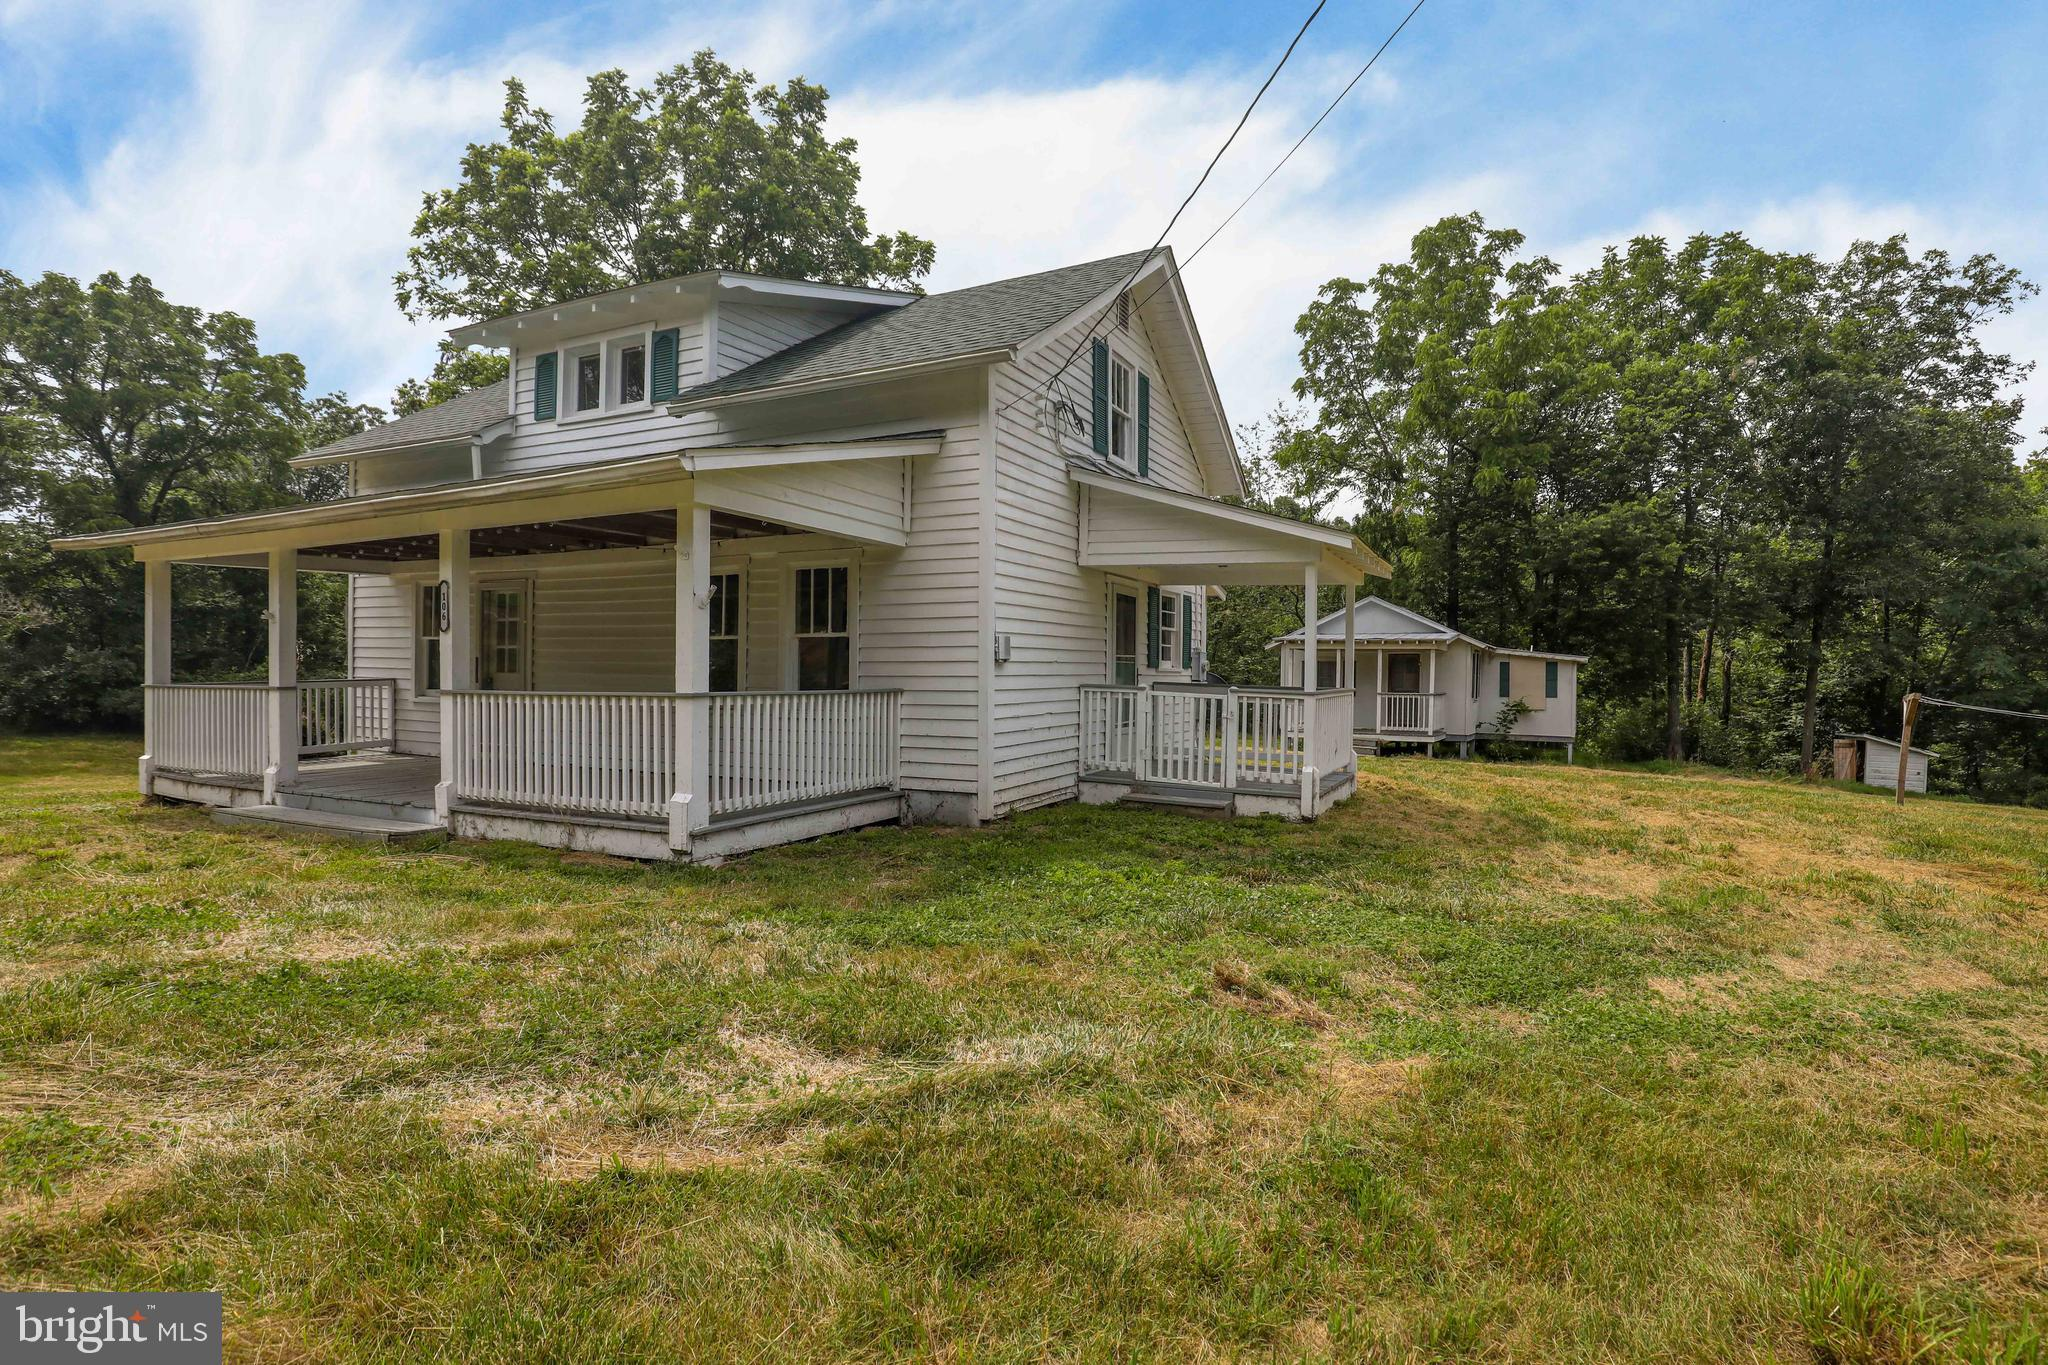 Cozy and comfy 3 bedroom  (primary on main level) 1 bath farmhouse  is looking for a new home owner